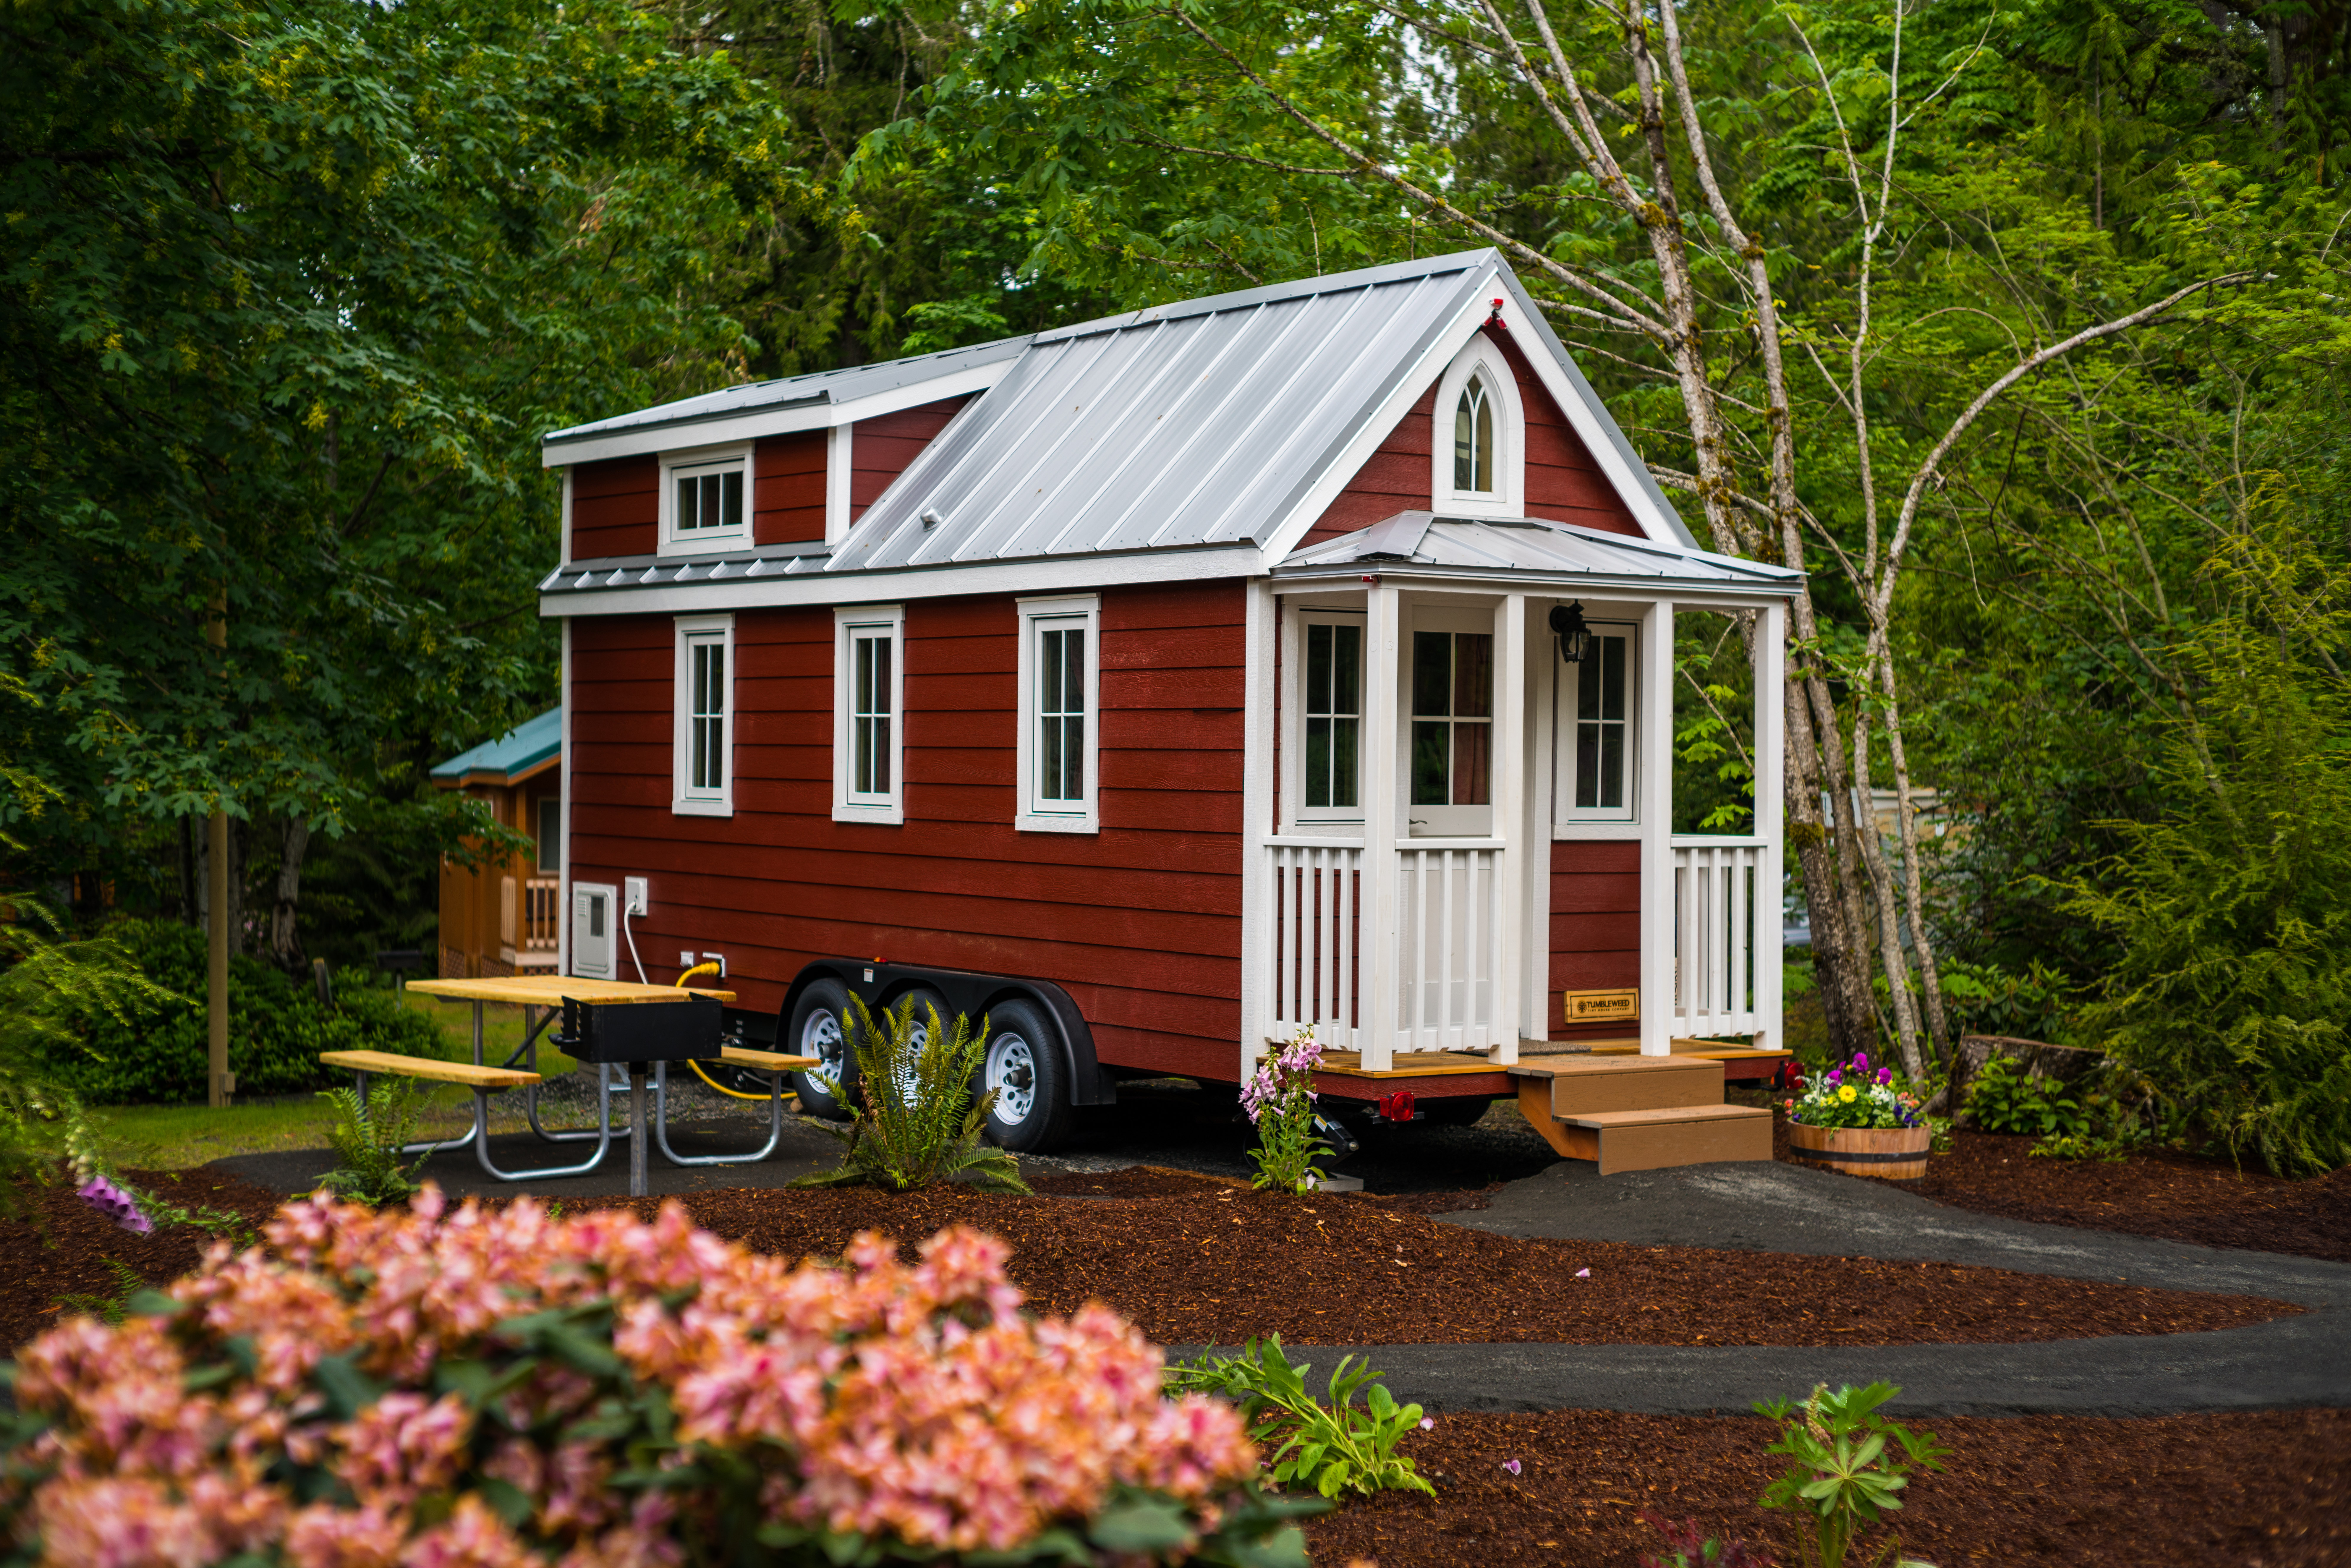 Groovy Tiny House Zoning Regulations What You Need To Know Curbed Largest Home Design Picture Inspirations Pitcheantrous